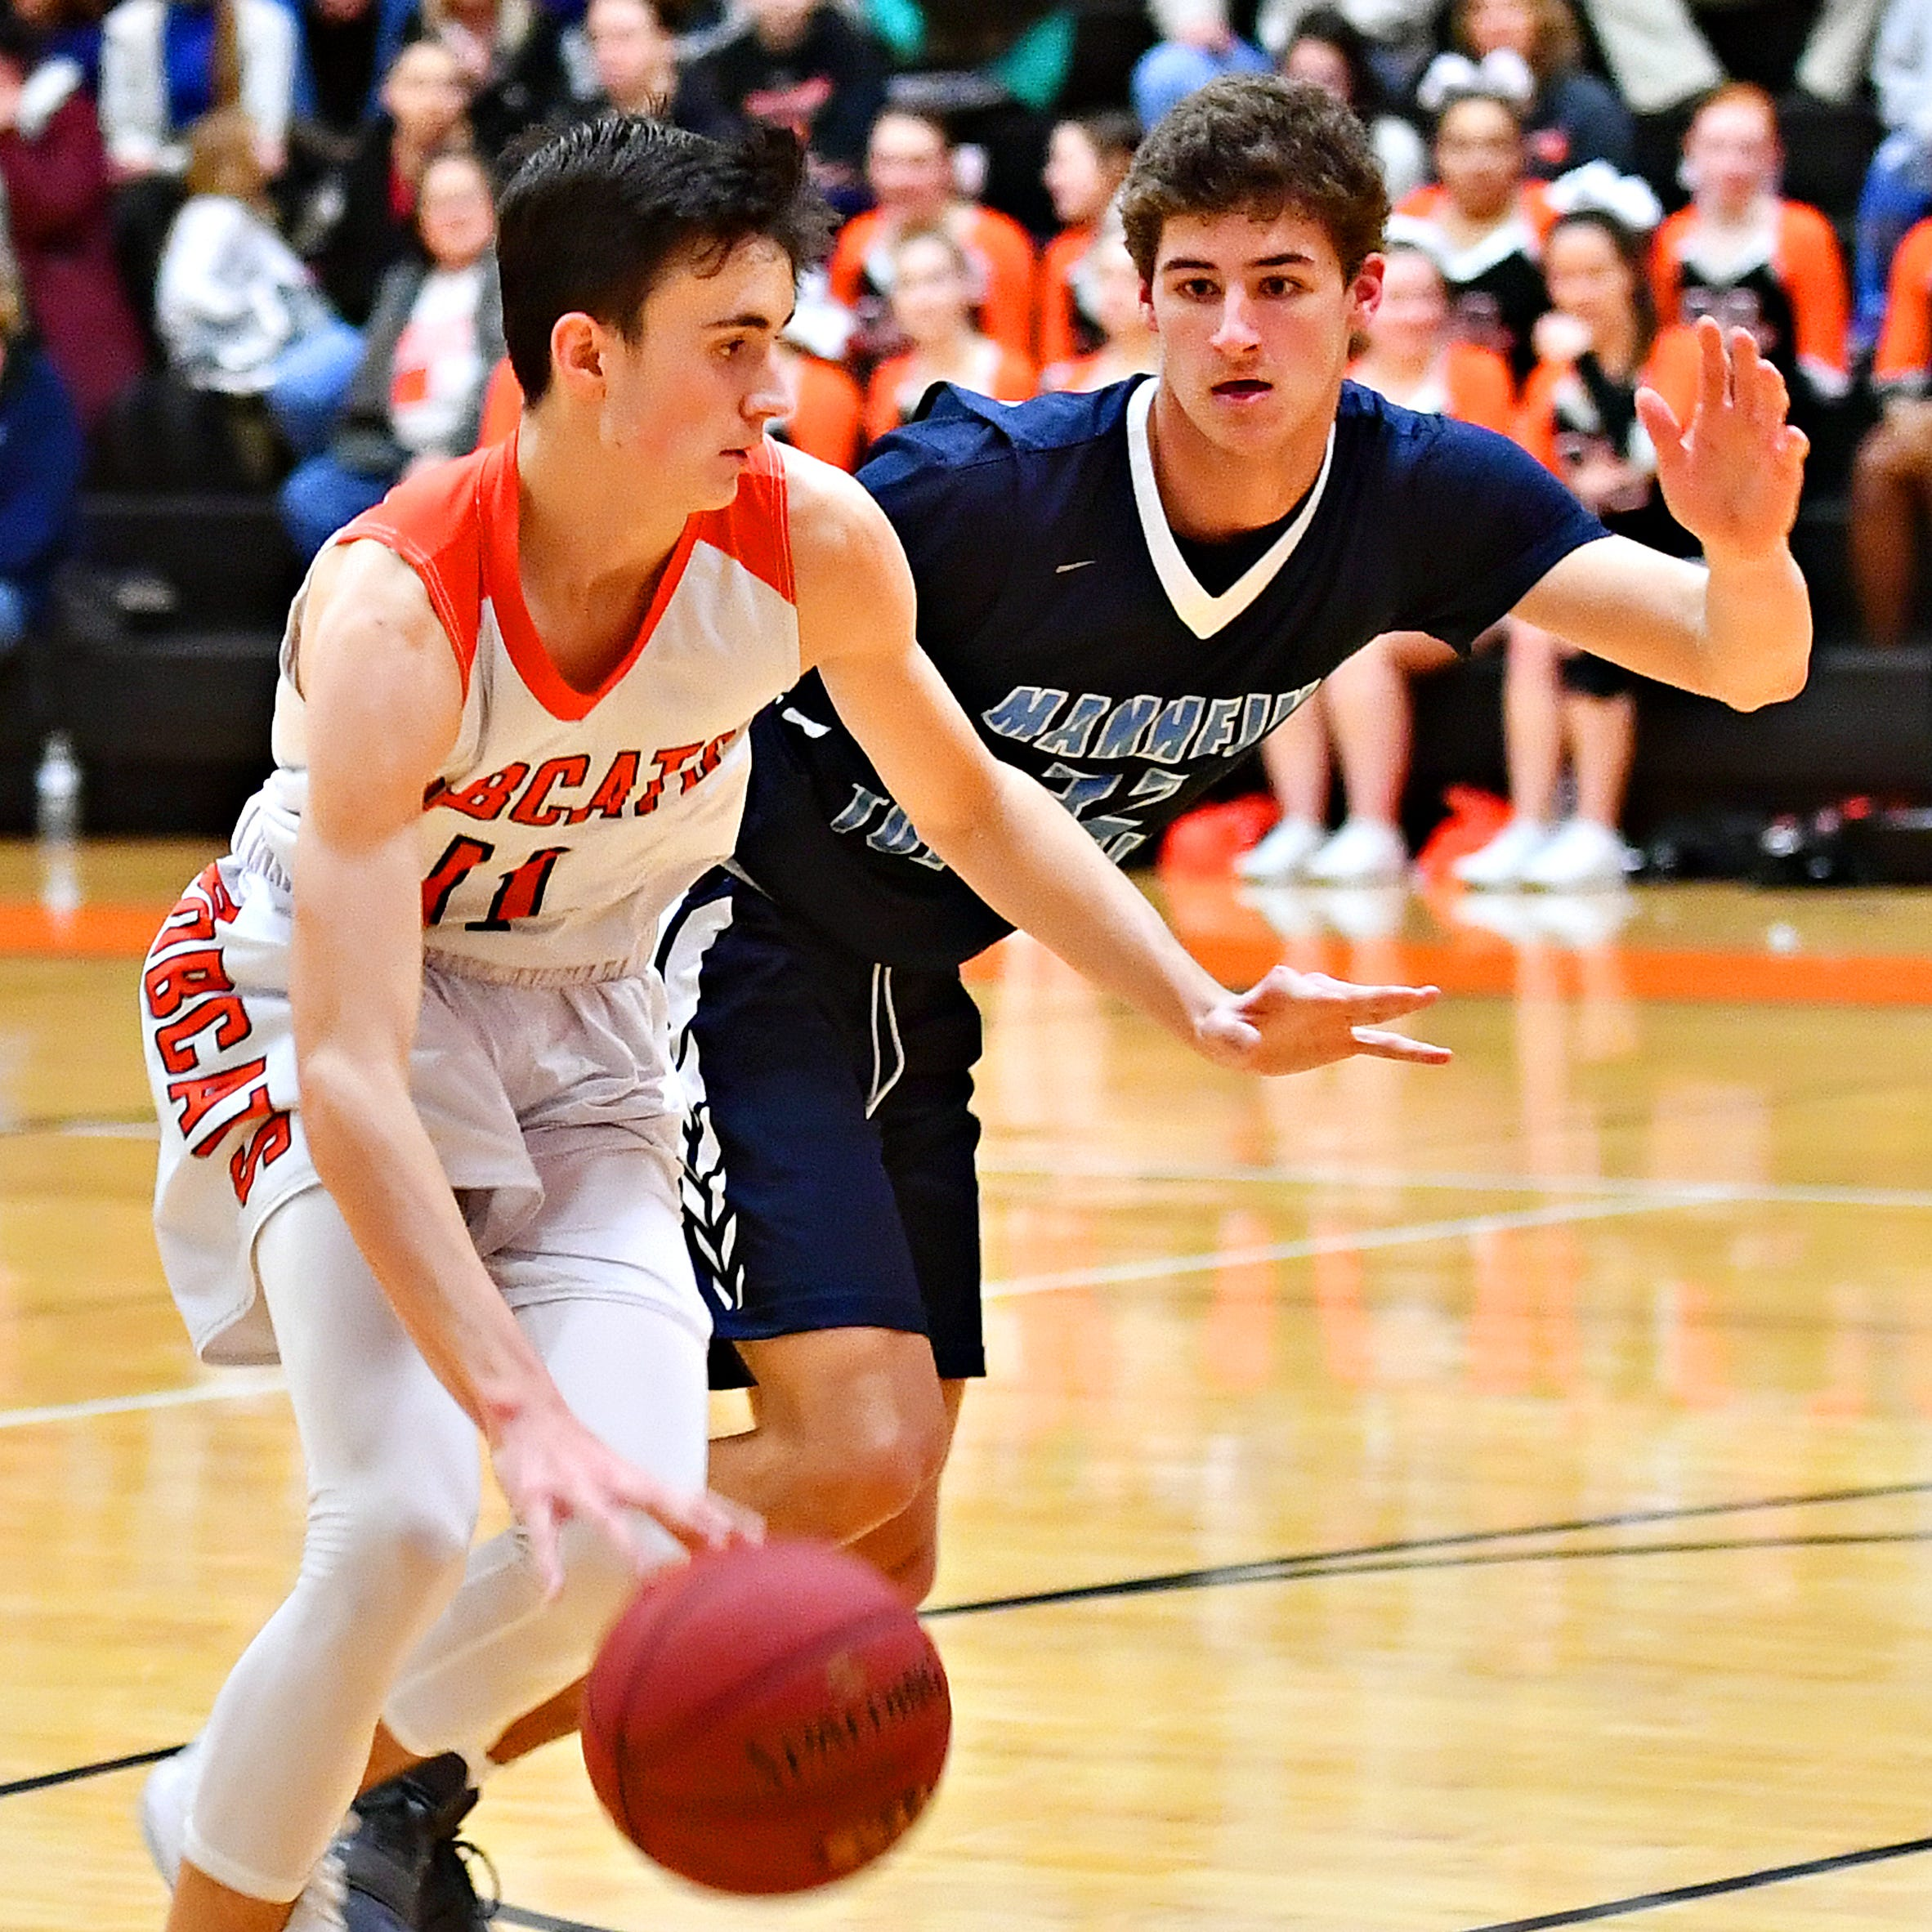 BOYS' BASKETBALL, MONDAY, JAN. 14: Sharp-shooting Andrew Brodbeck leads Northeastern